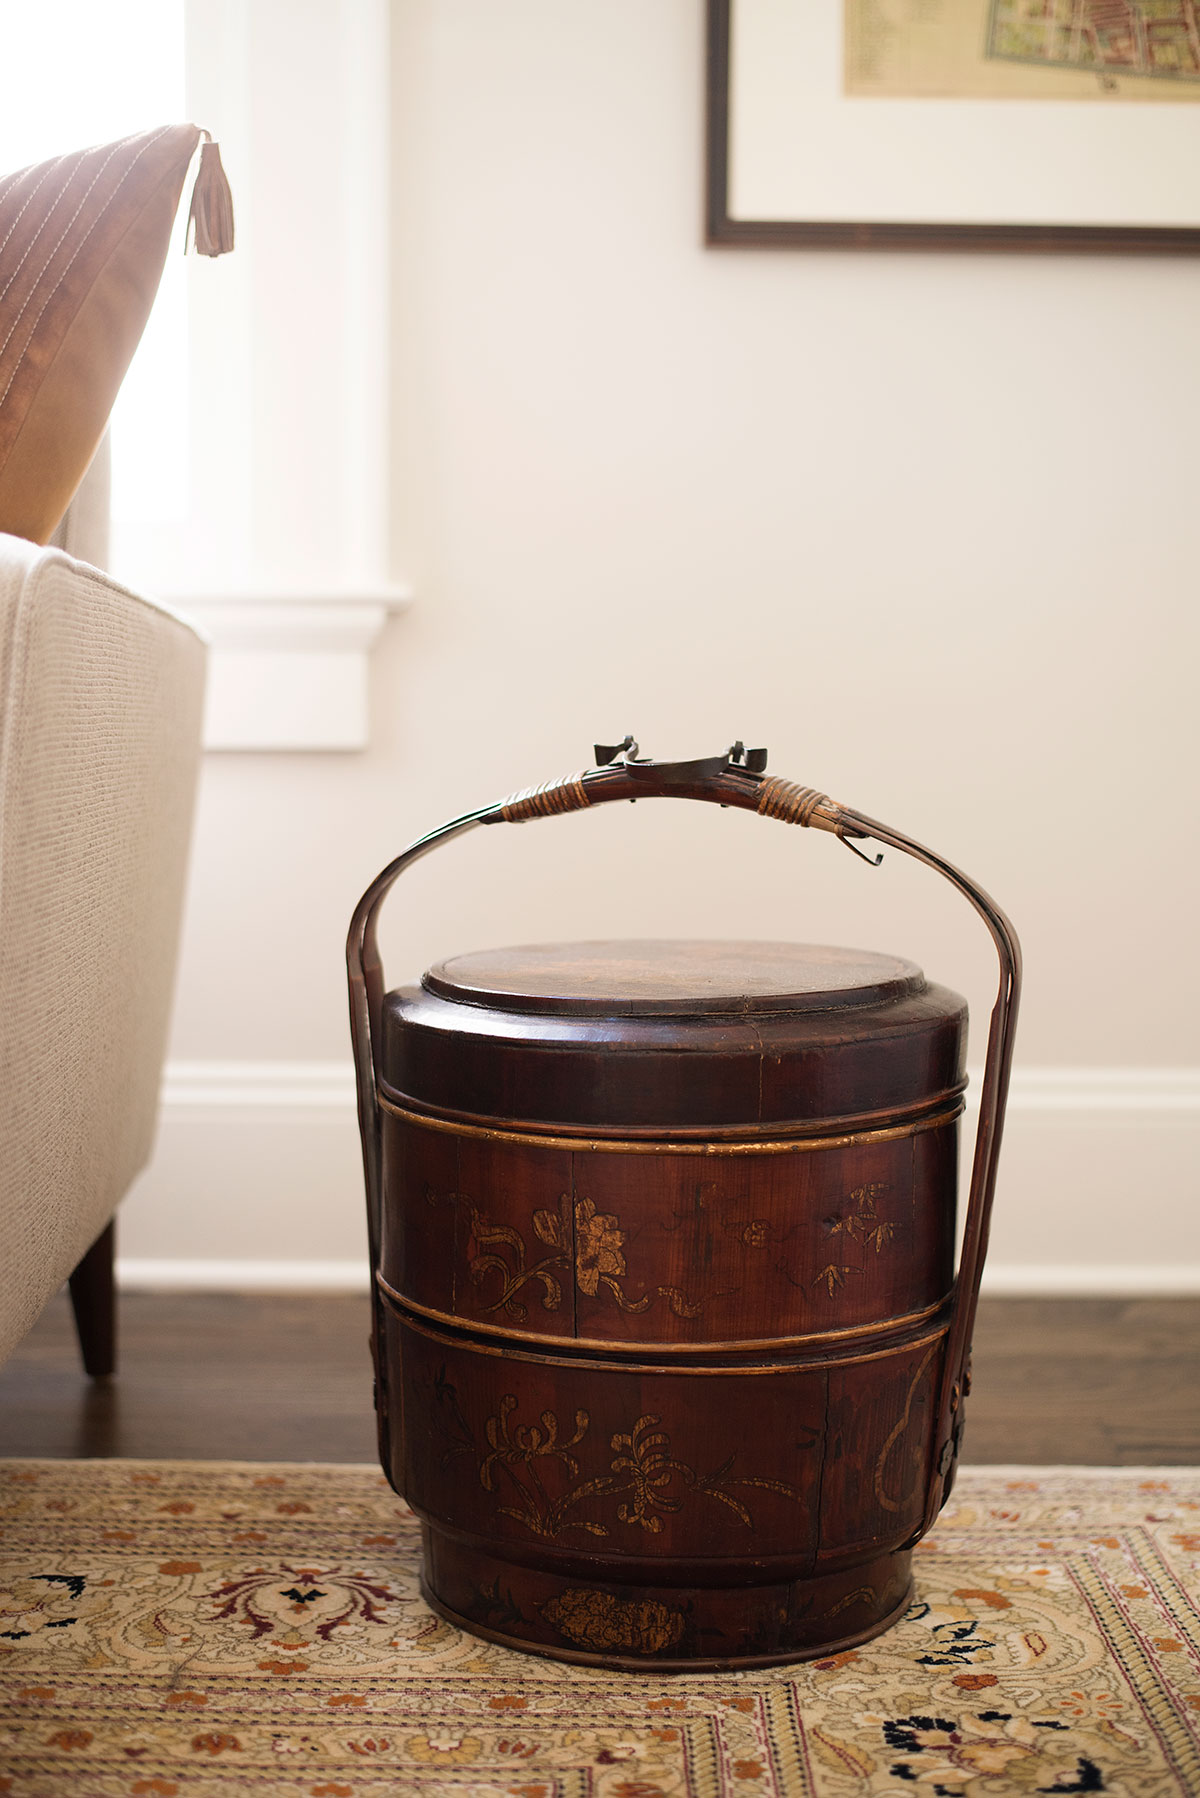 East Asian antique bucket used as side table